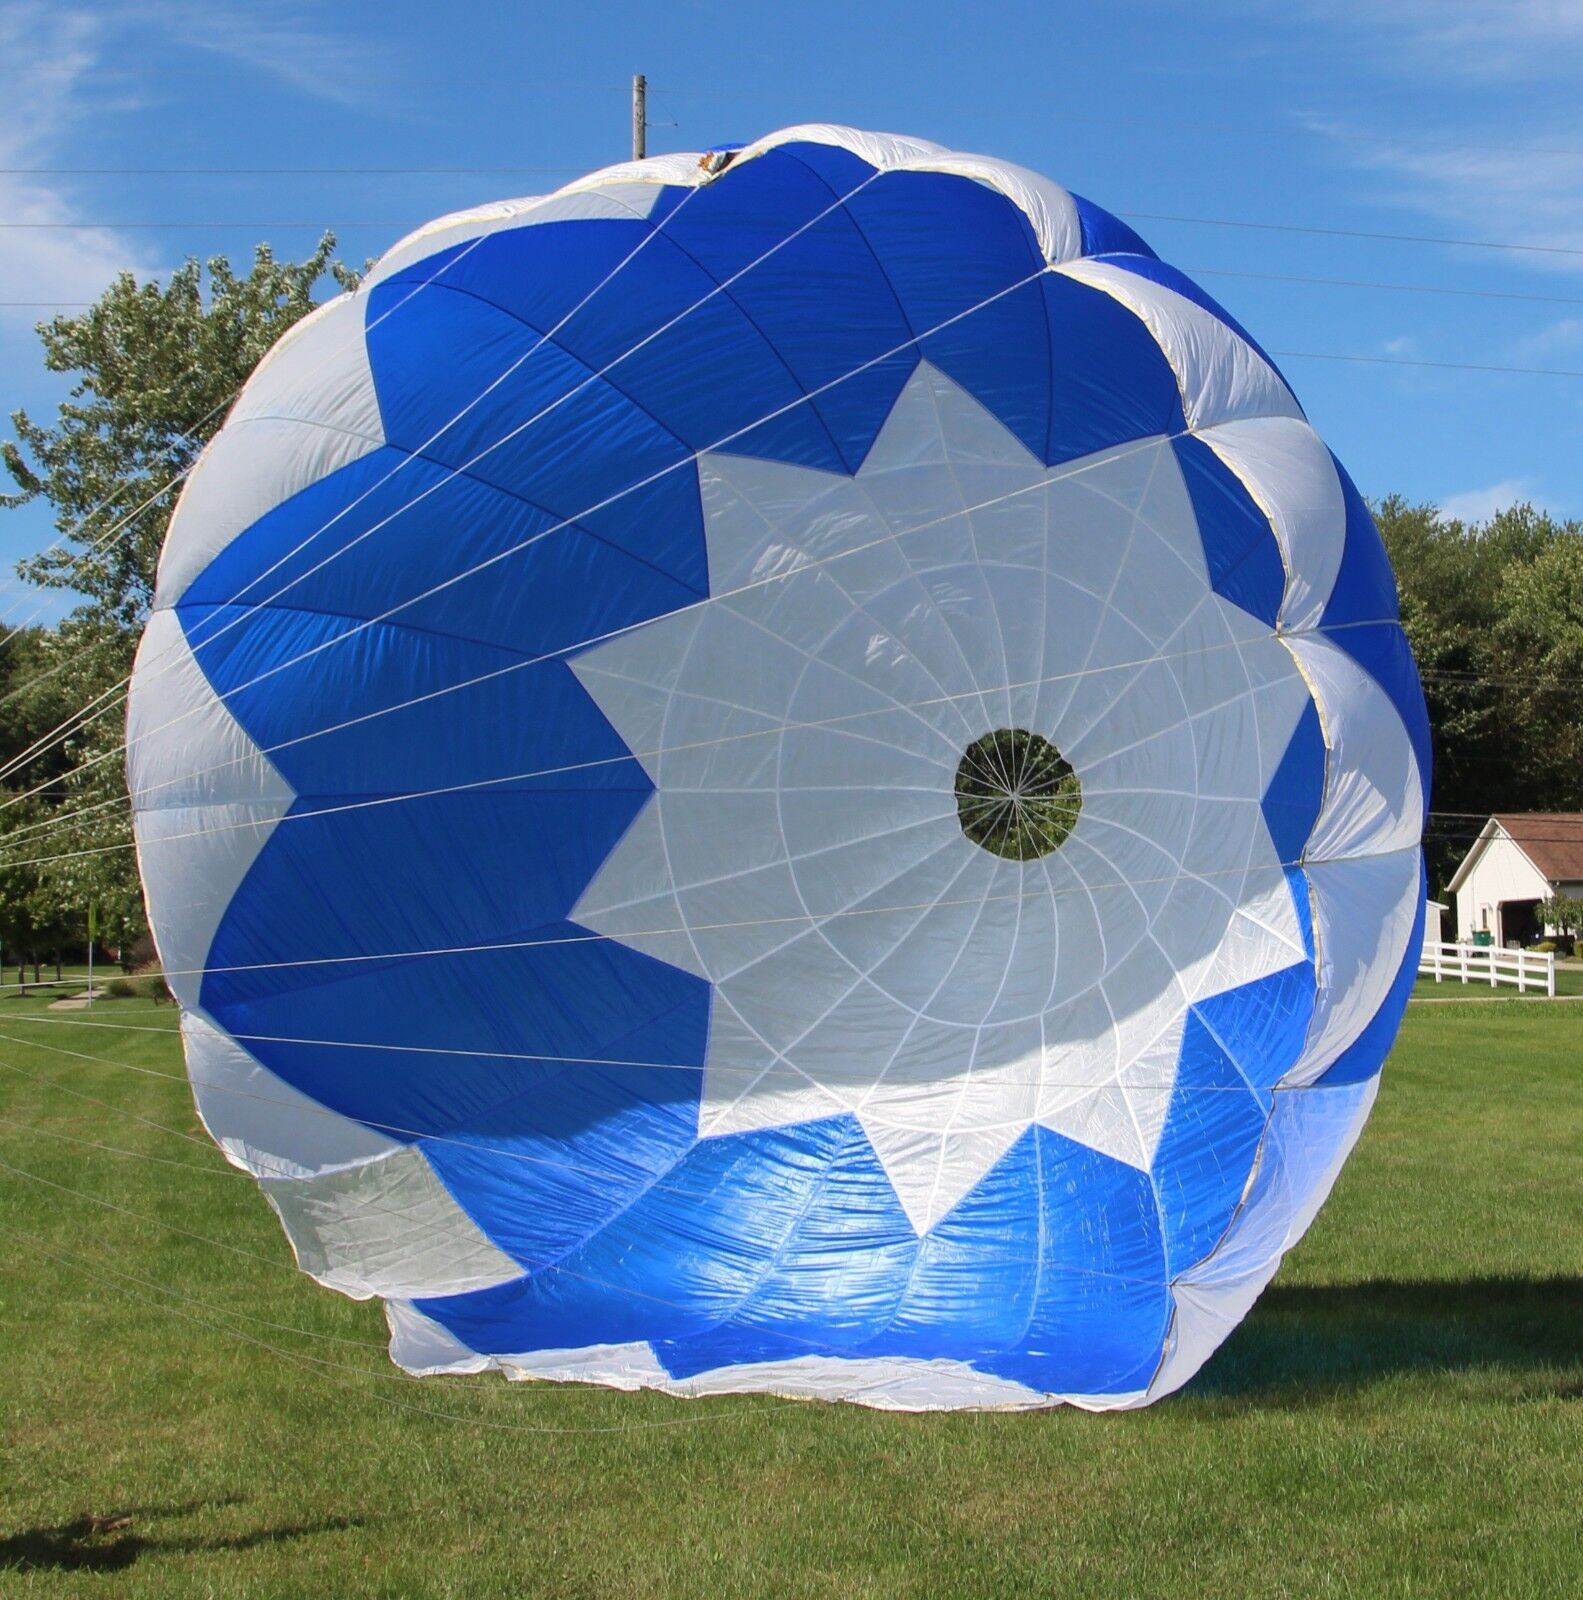 Invader 26ft Round reserve skydiving parachute canopy